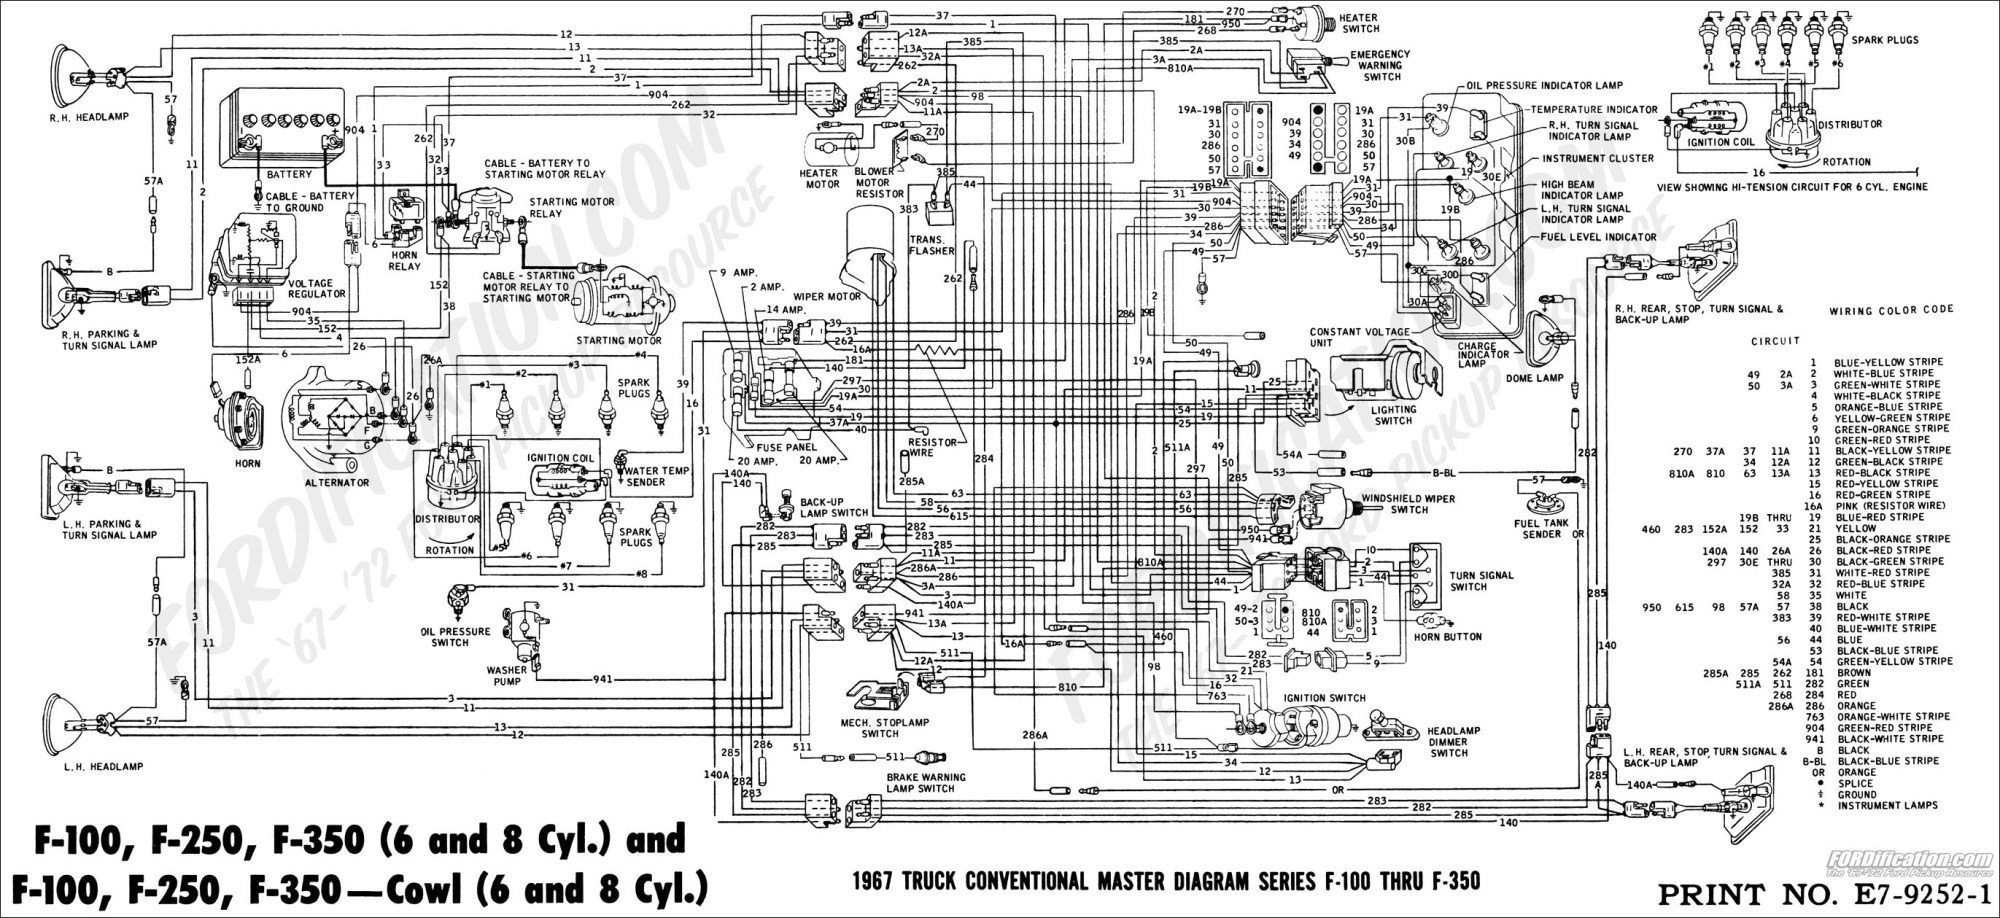 hight resolution of f250 trailer wiring ford f 150 diagram wiring diagram features 1999 ford f250 power window wiring diagram 1999 f250 wiring diagram